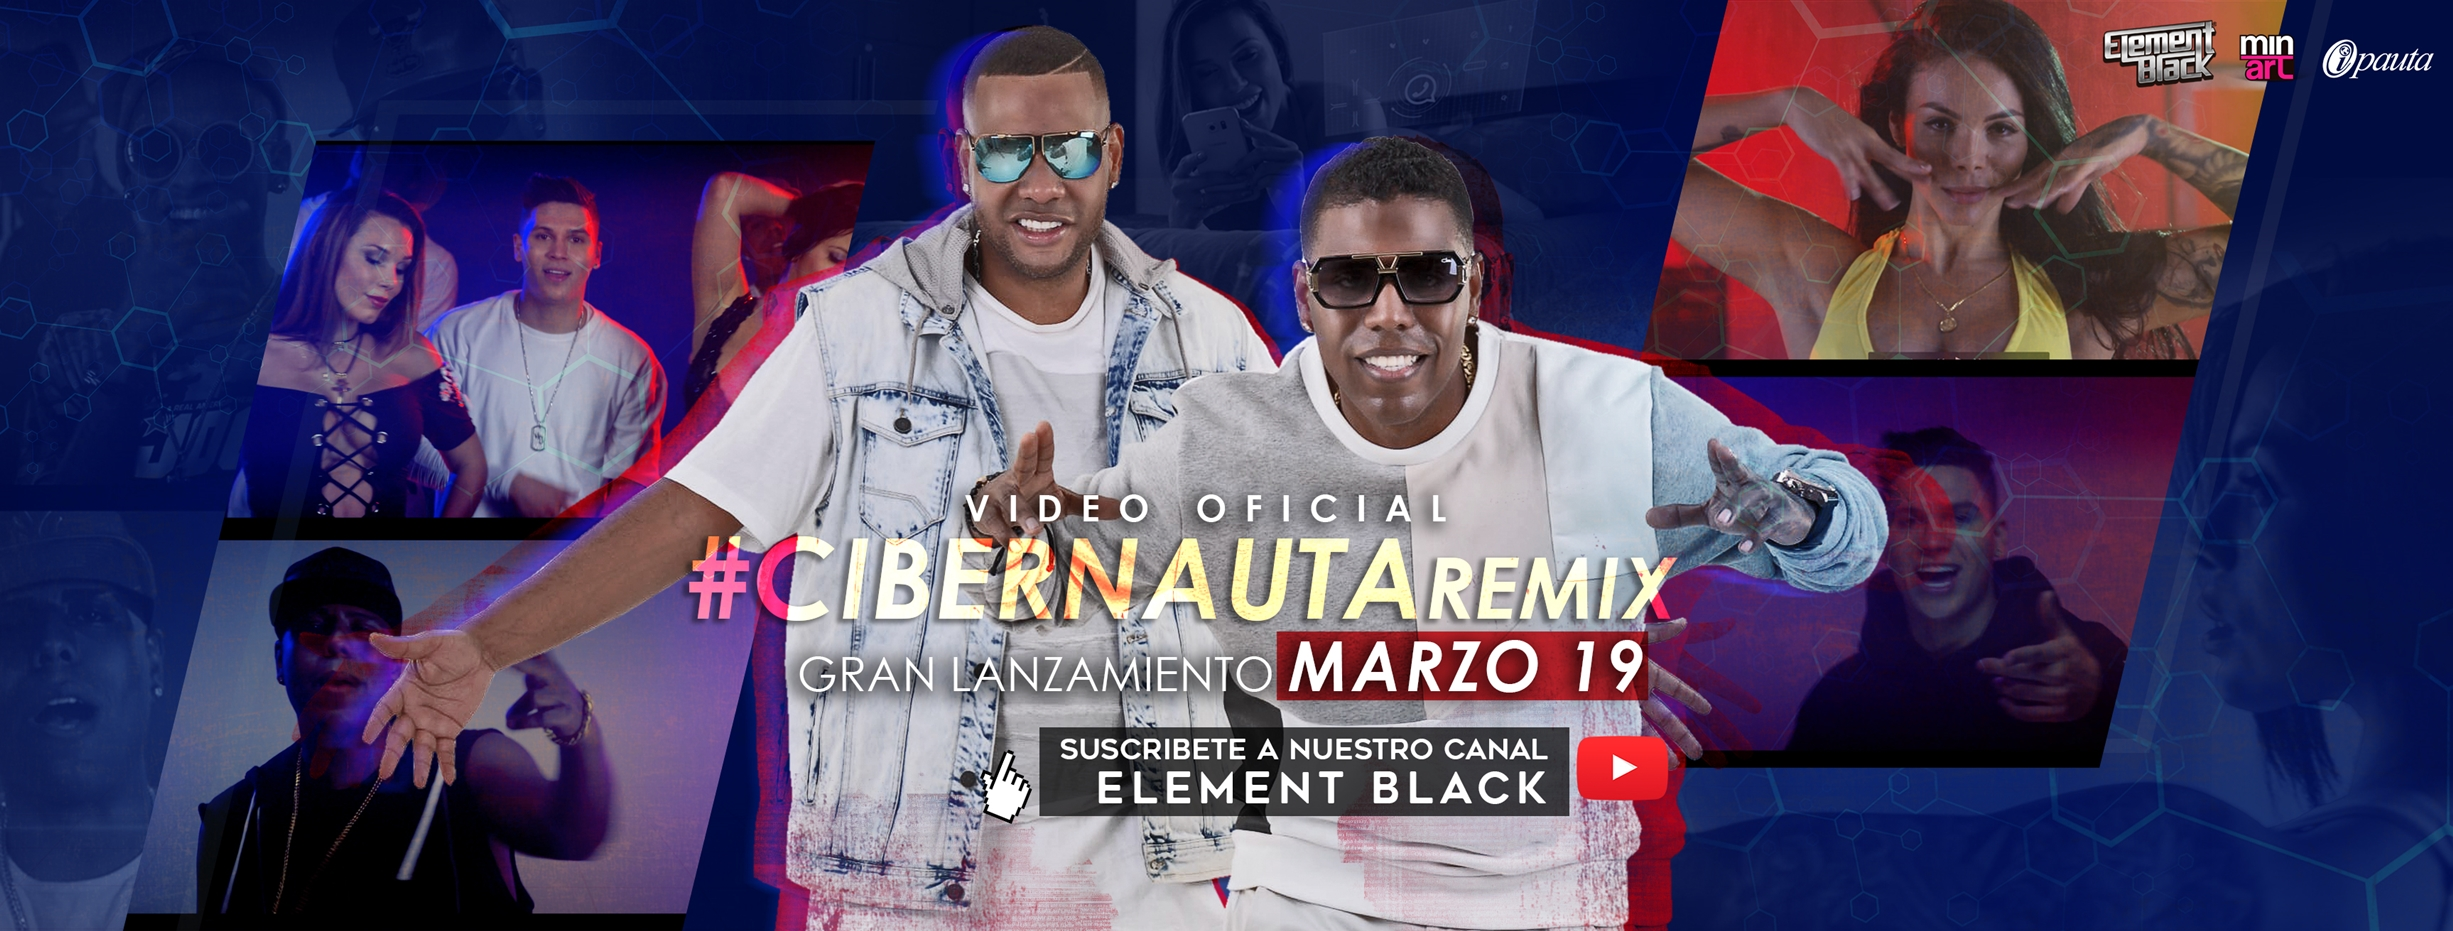 cibernauta remix element black juan fernando quintero landa freak 2016 video youtube tebanmusic ipauta